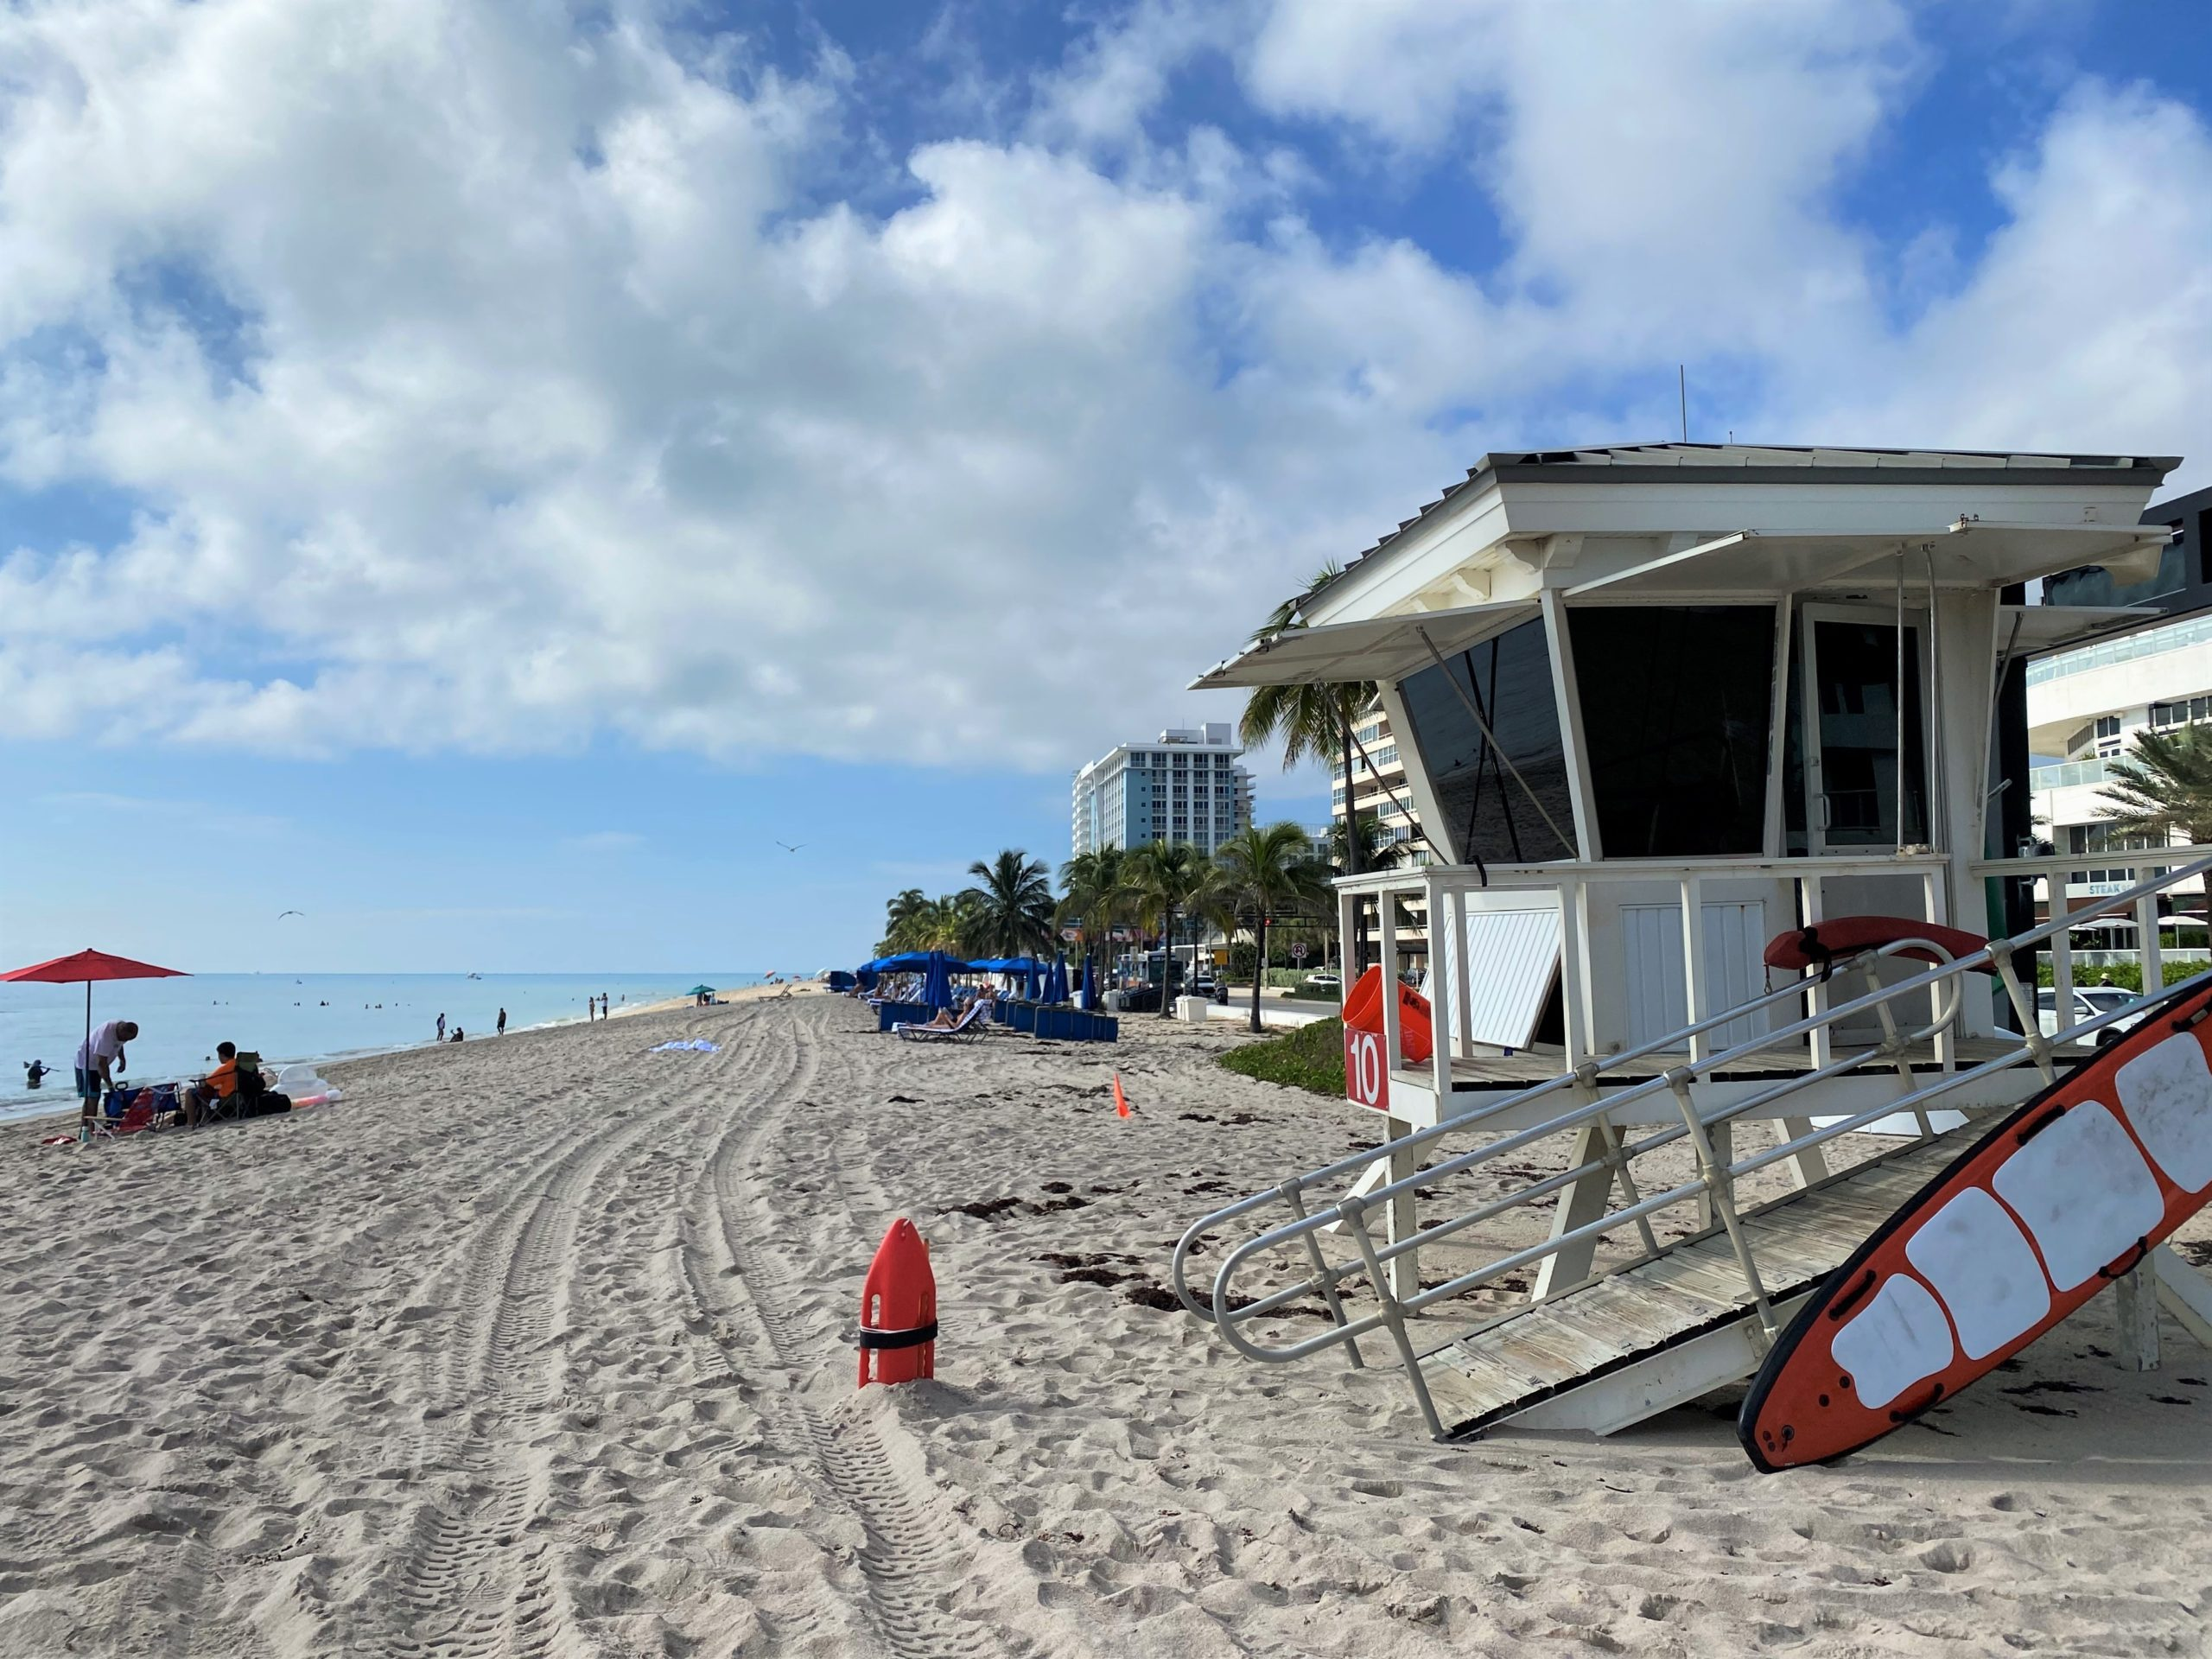 fort lauderdale beach things to do